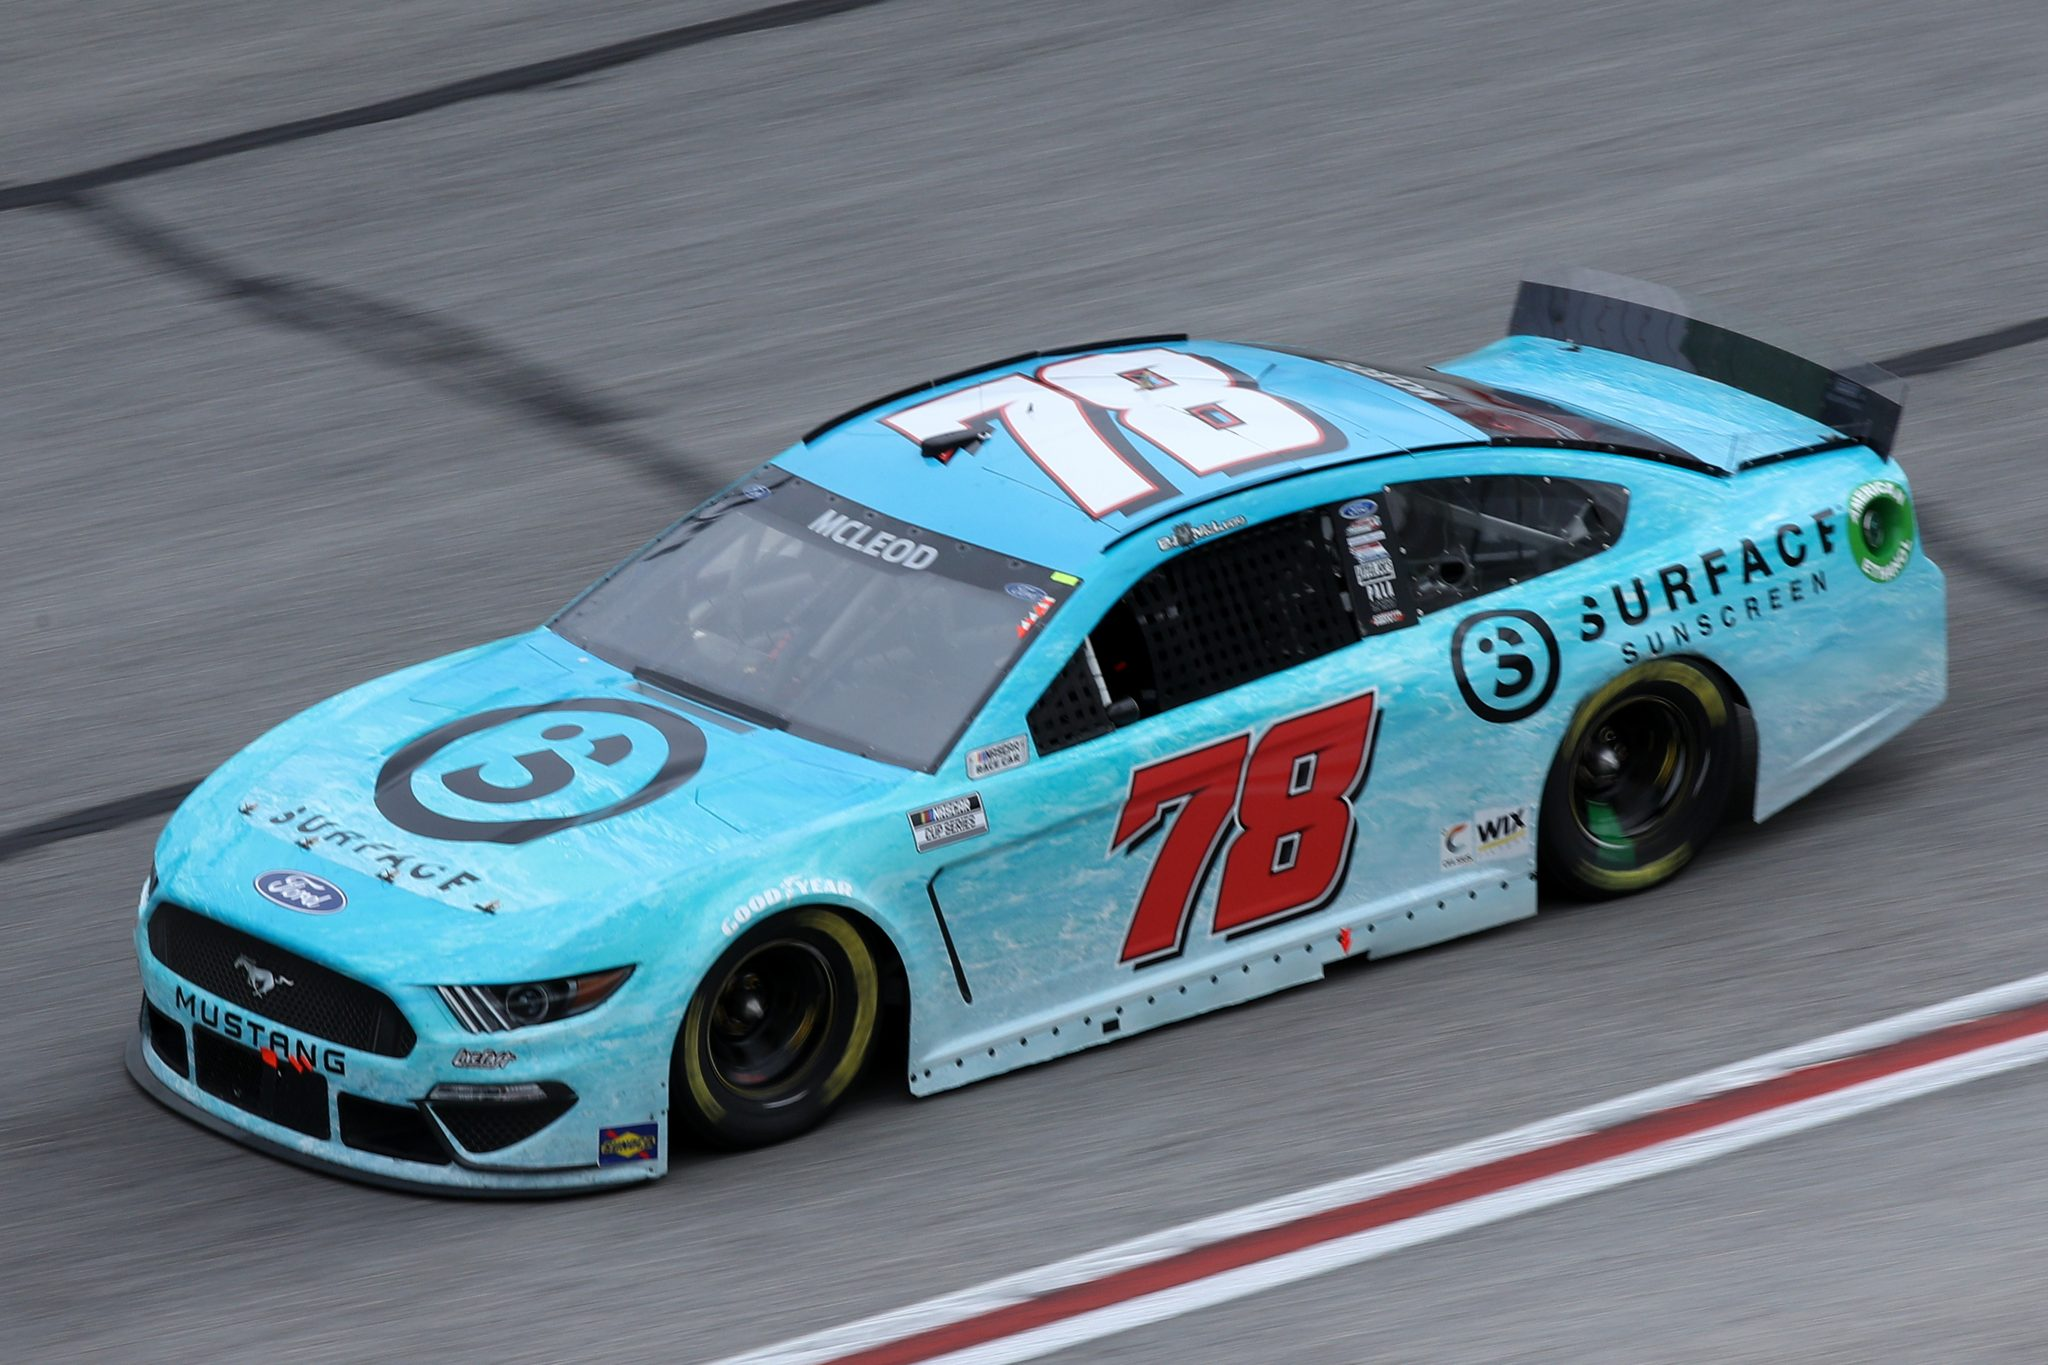 HAMPTON, GEORGIA - MARCH 21: BJ McLeod, driver of the #78 Surface Sunscreen Ford, drives during the NASCAR Cup Series Folds of Honor QuikTrip 500 at Atlanta Motor Speedway on March 21, 2021 in Hampton, Georgia. (Photo by Sean Gardner/Getty Images) | Getty Images